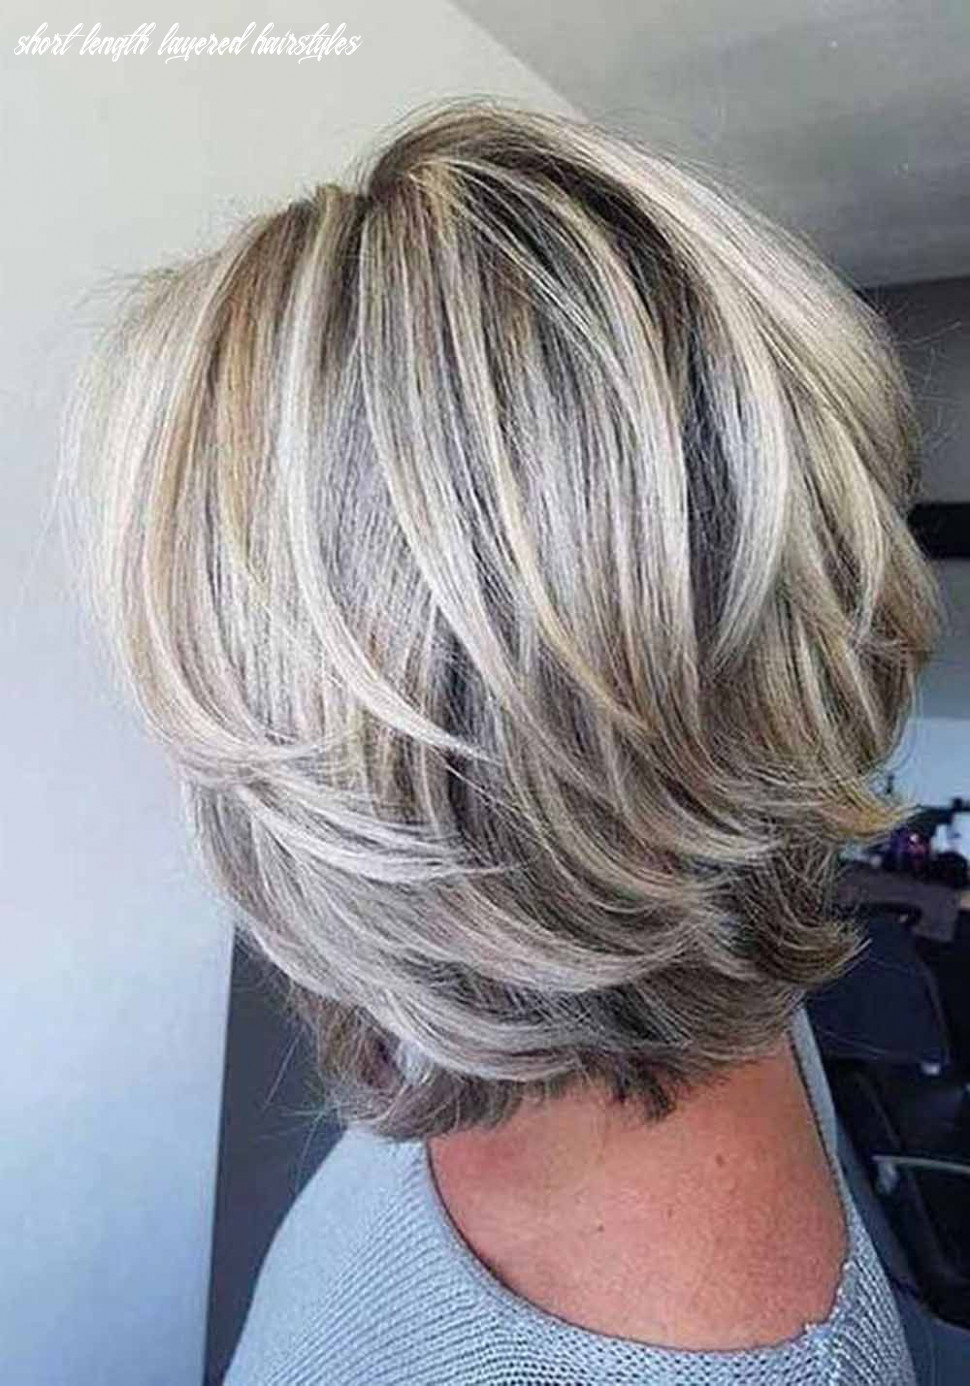 Pin on hairstyles short length layered hairstyles